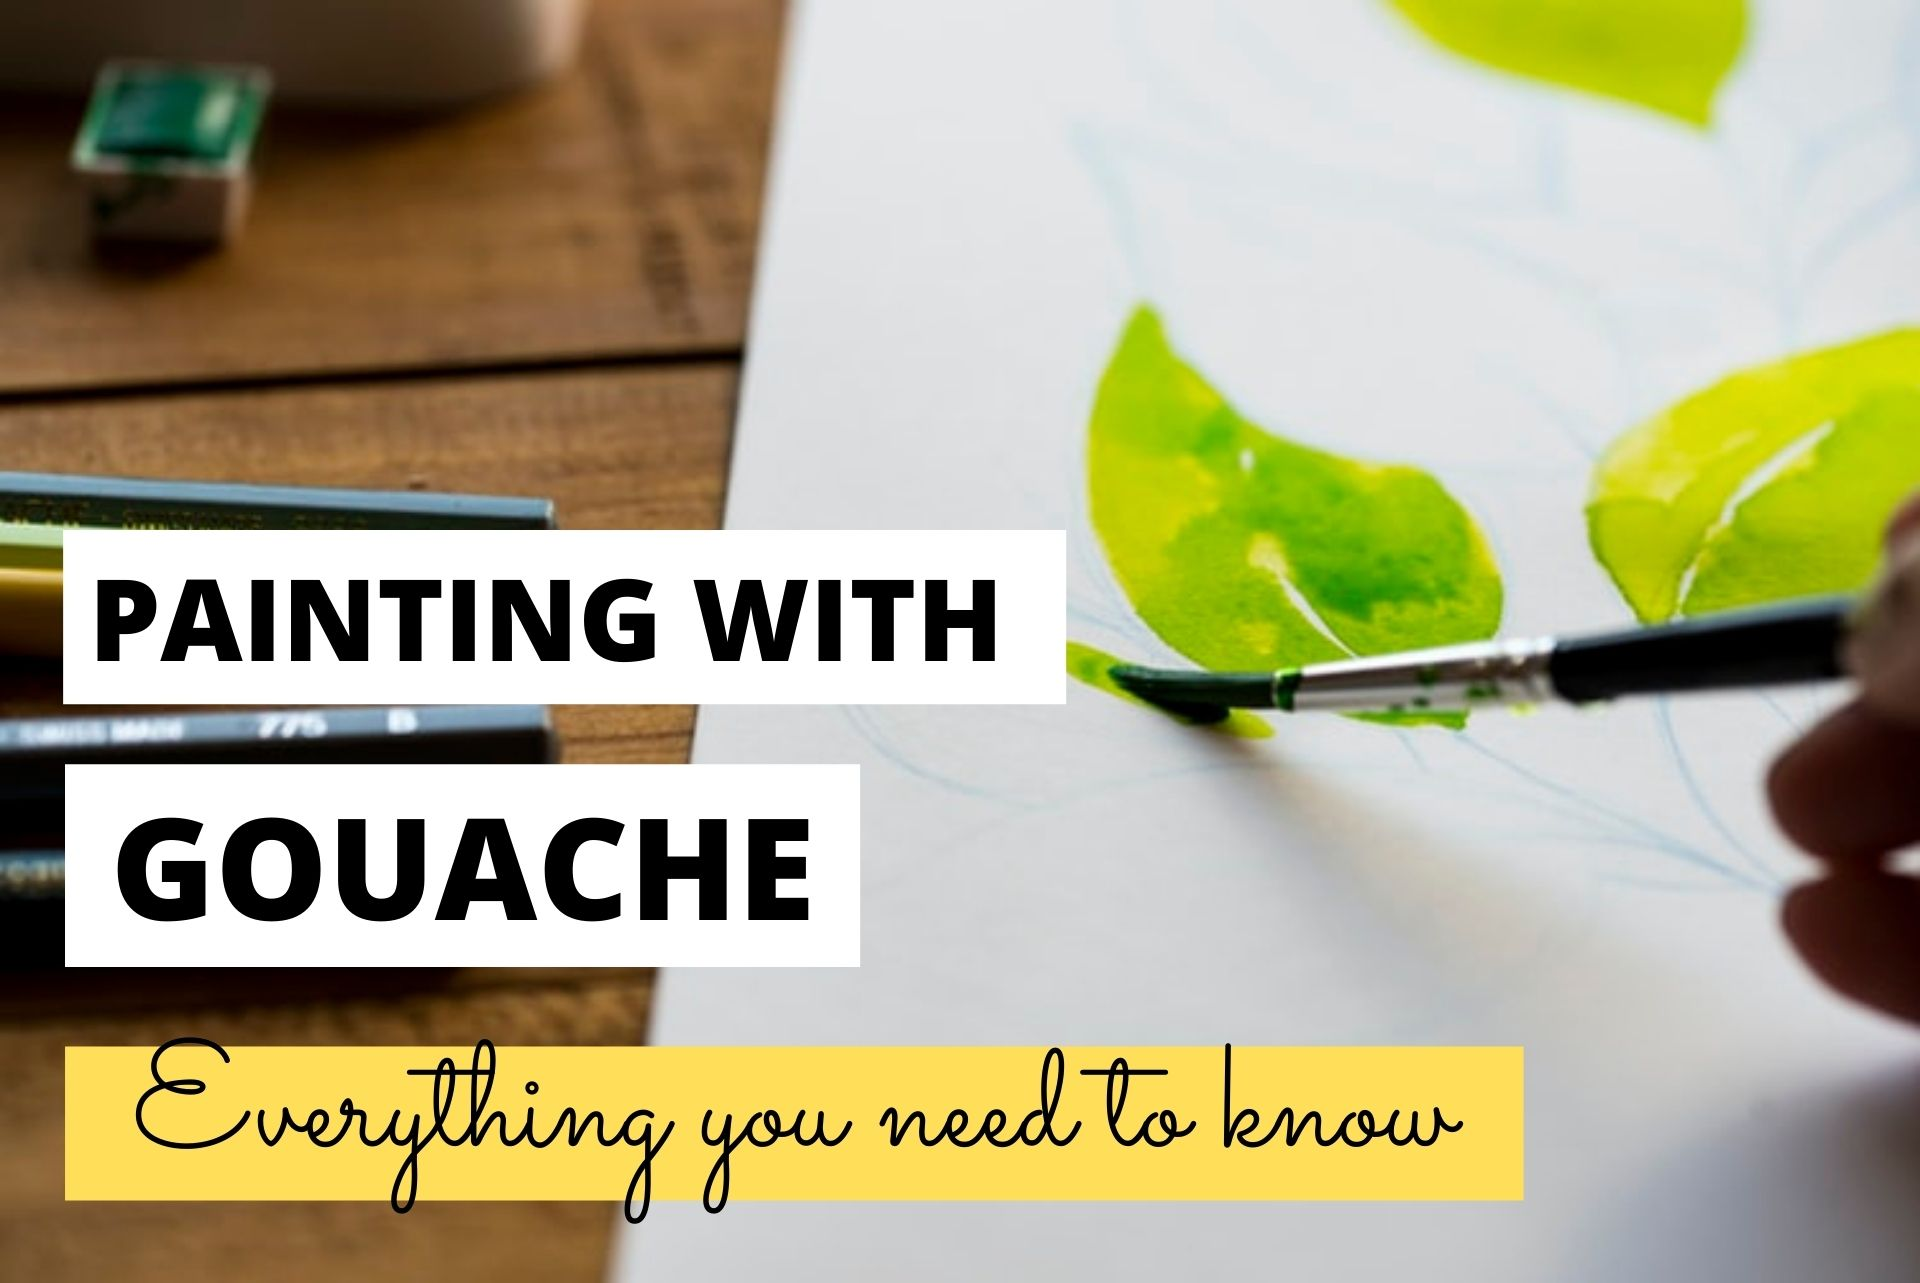 painting with gouache tips for beginners